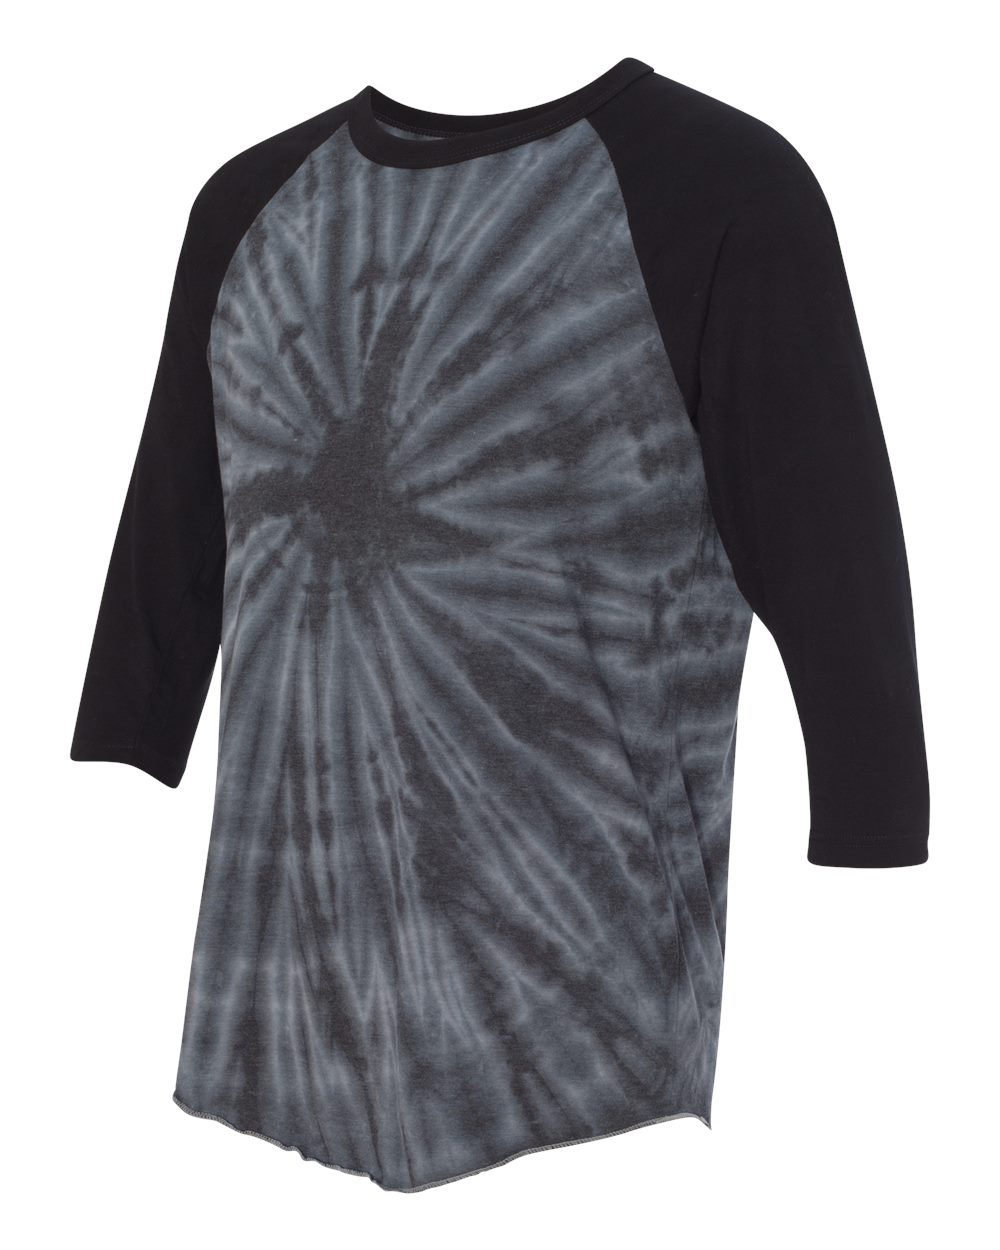 Dyenomite 660VR - Tie-Dyed Three-Quarter Sleeve Raglan ...